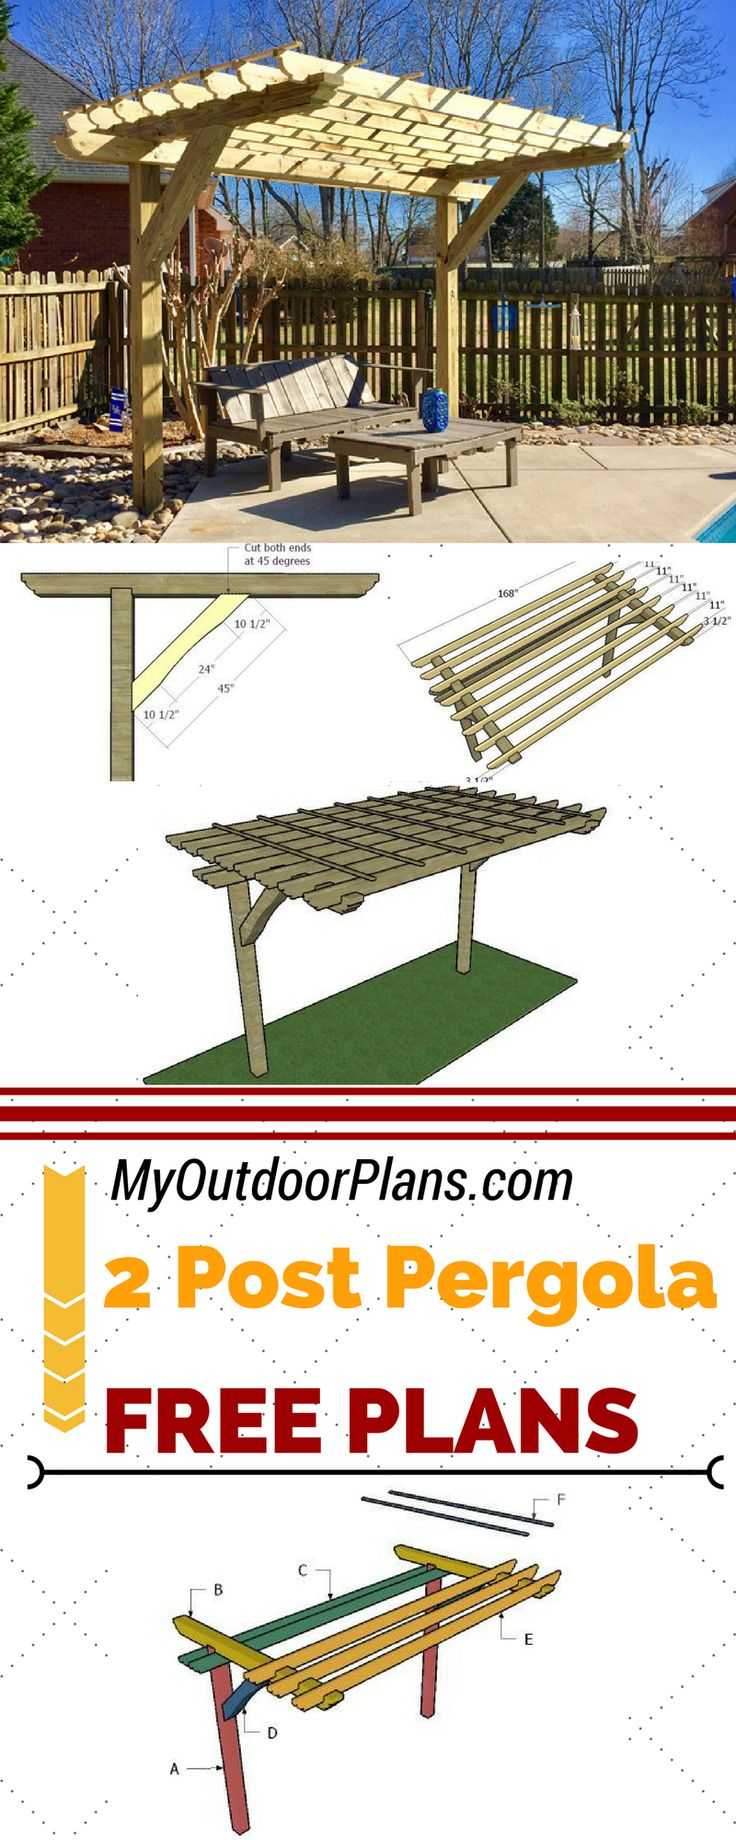 Best 25+ Pergola plans ideas on Pinterest | Pergola, Diy pergola ...